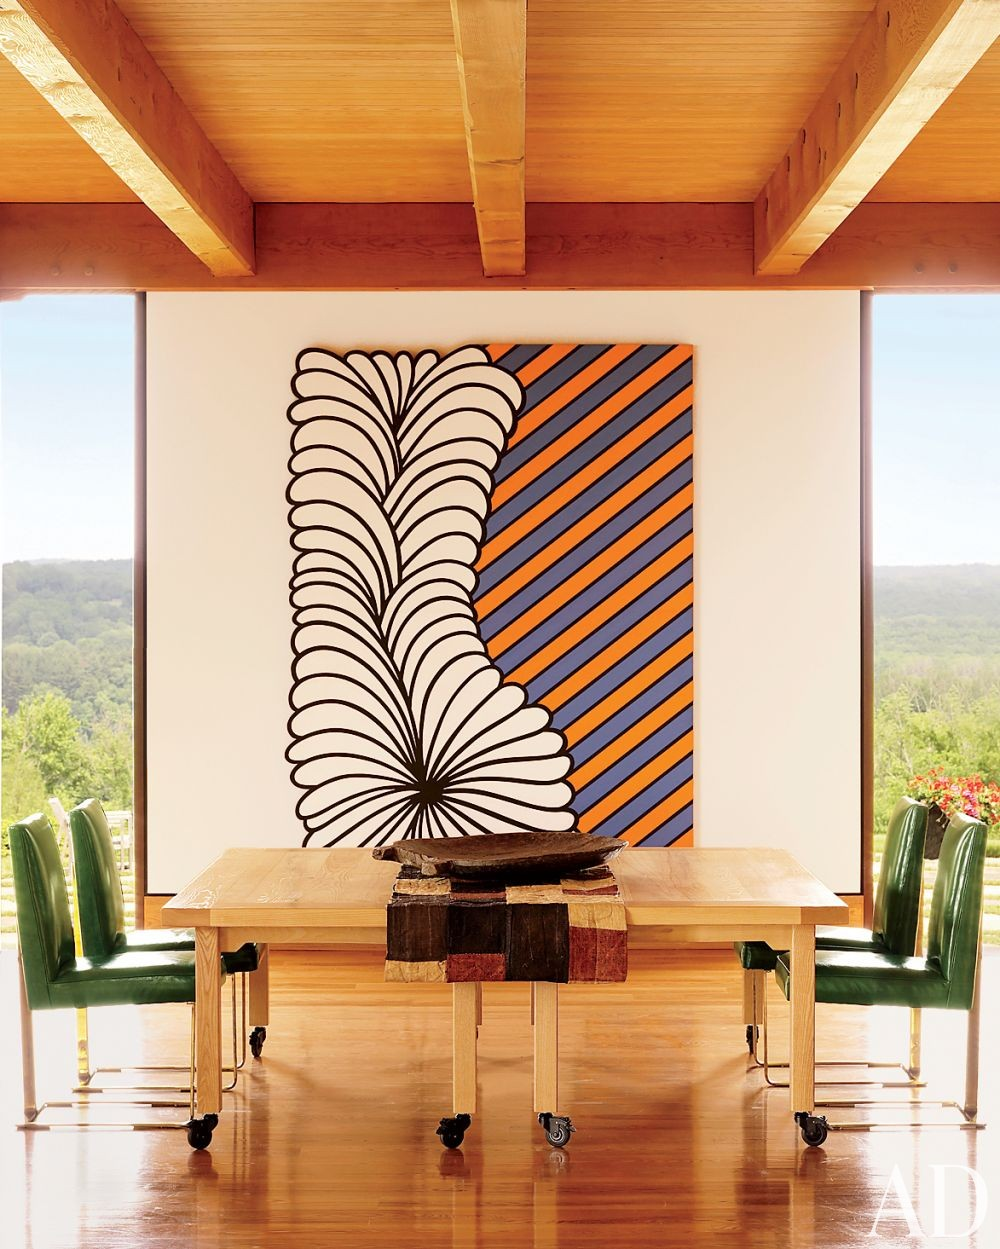 Contemporary Dining Room Ike Kligerman Barkley Architects in Hudson Valley, New York